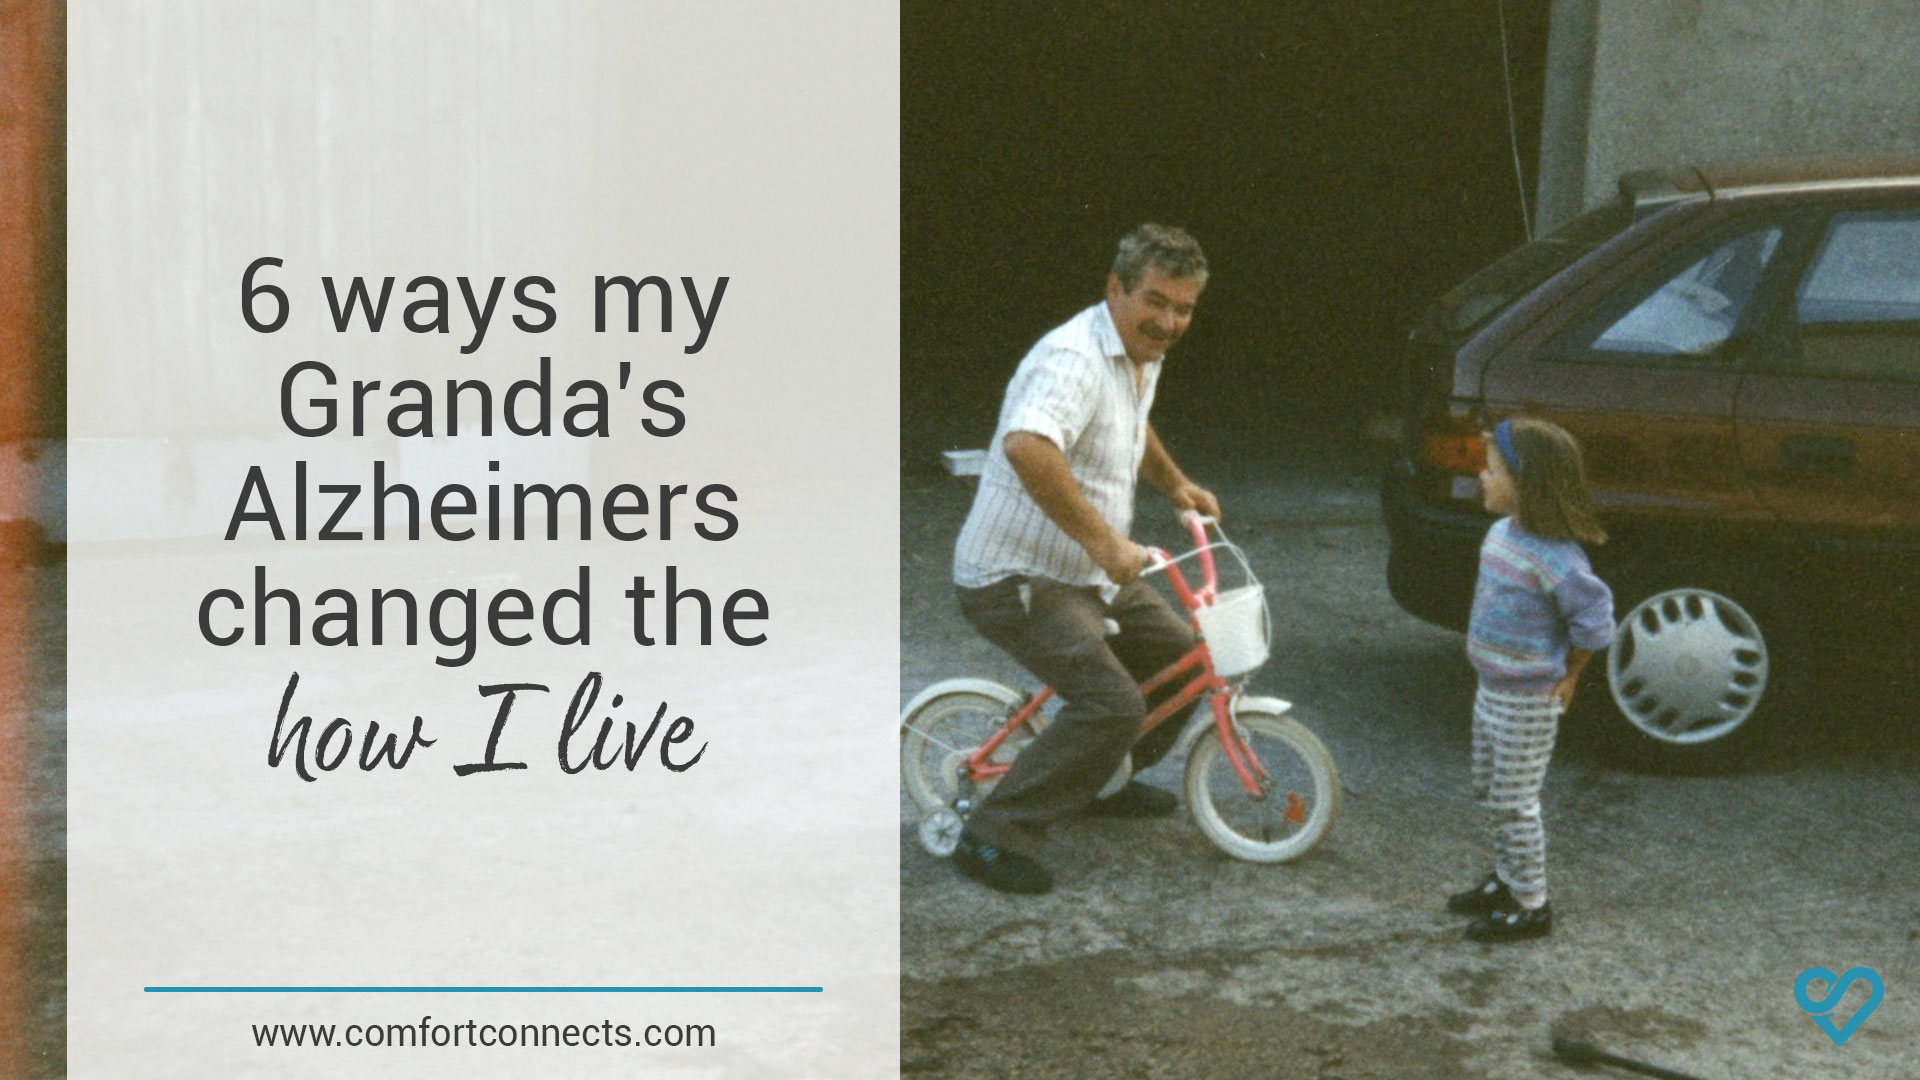 6 ways my Granda's Alzheimers changed how I live